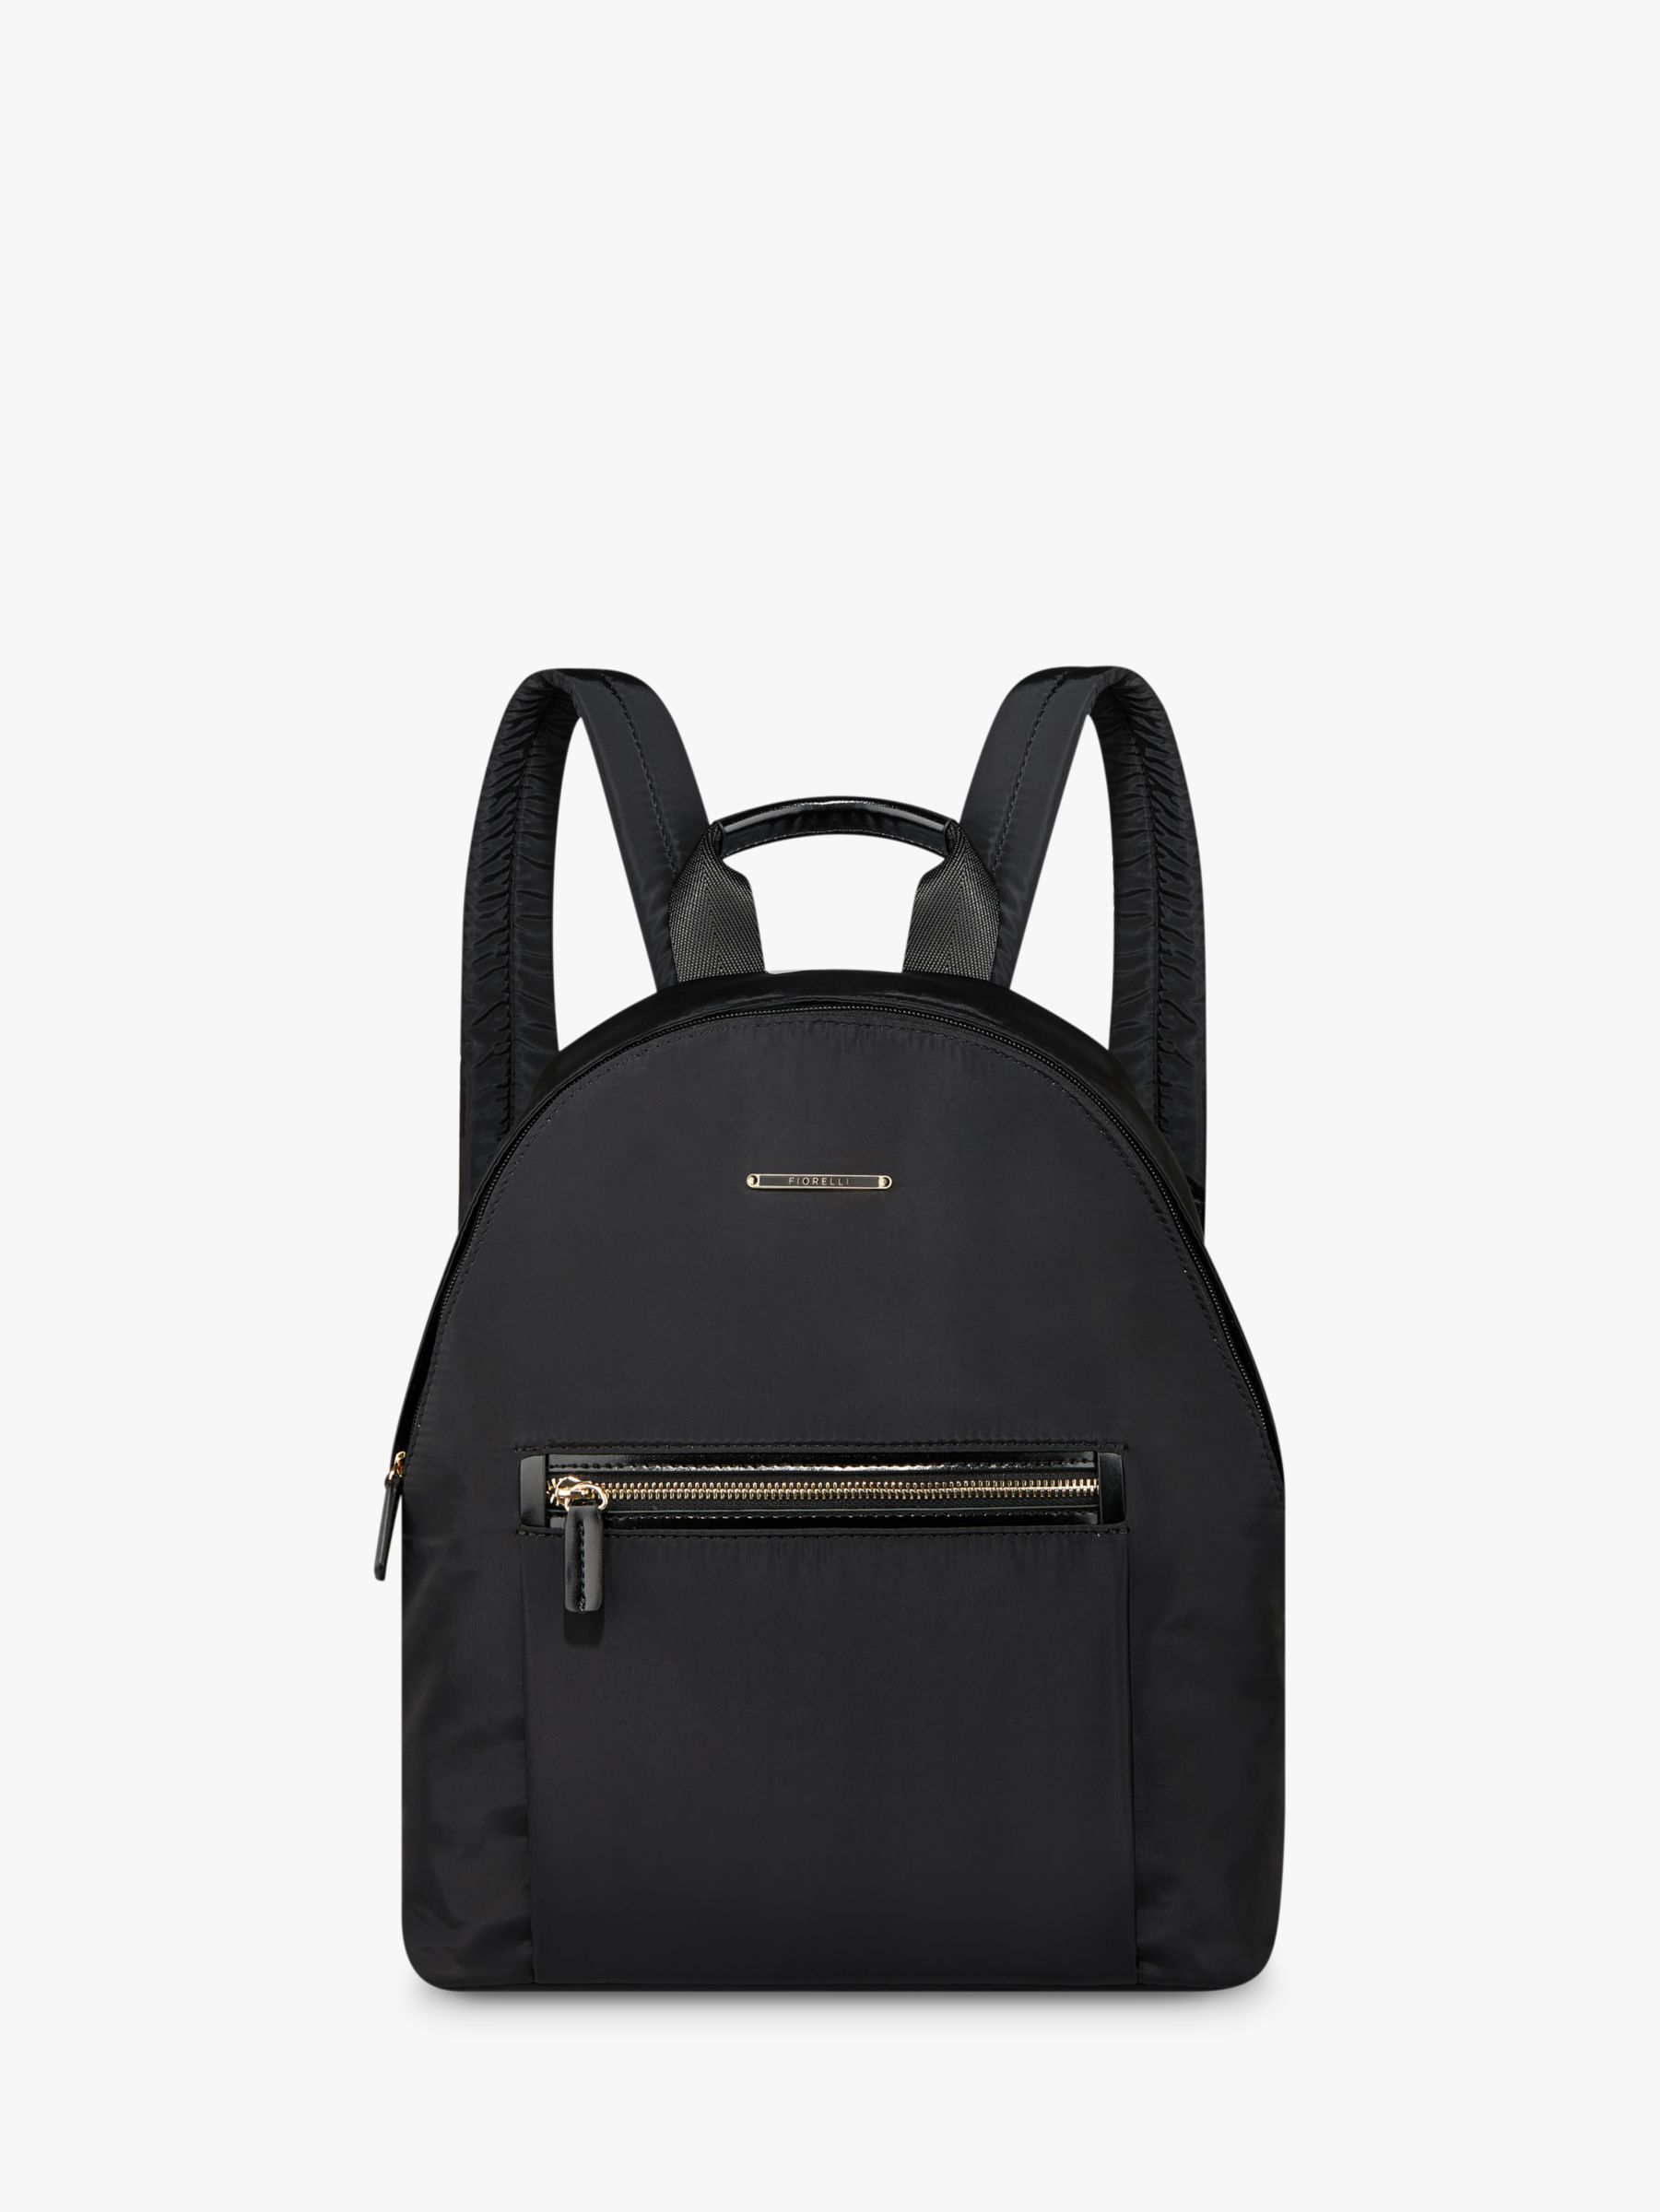 Fiorelli Fiorelli Sarah Backpack, Black